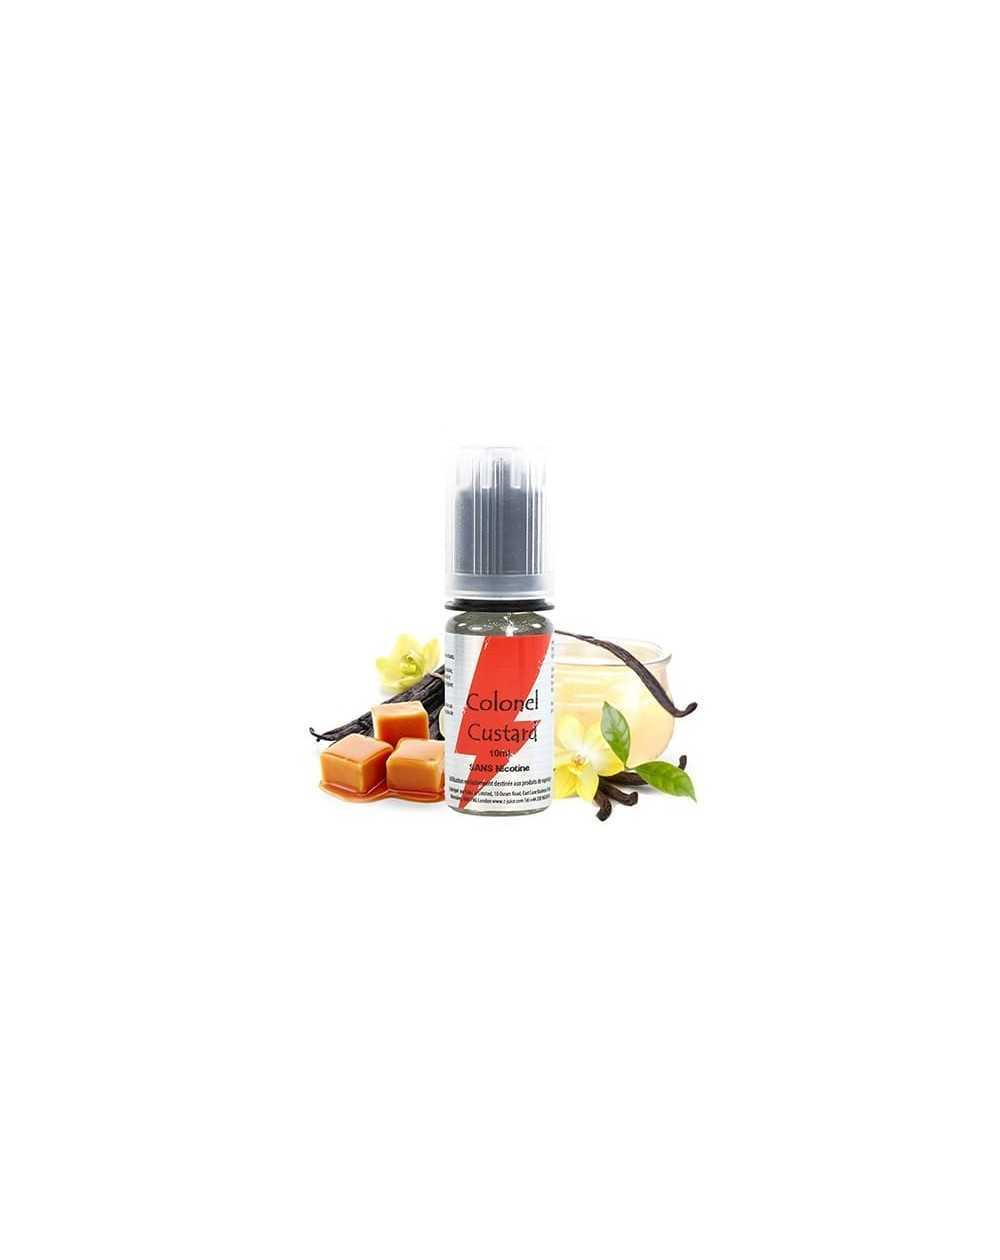 Colonel Custard 10ml - T-Juice-1